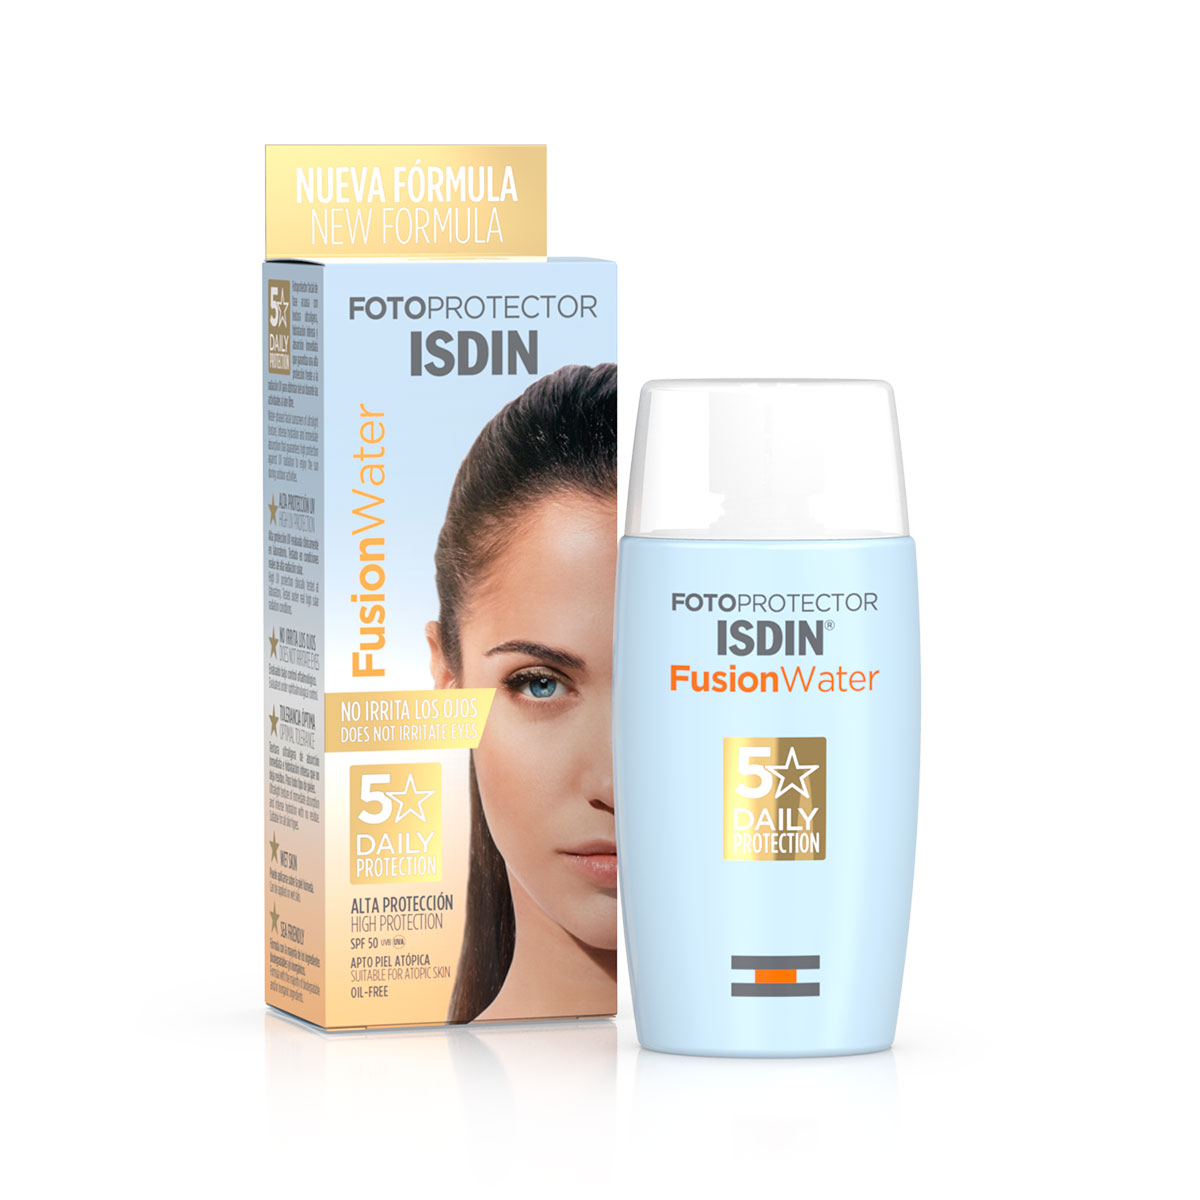 Fotoprotector Fusion Water SPF 50 - ISDIN - 50 ml.